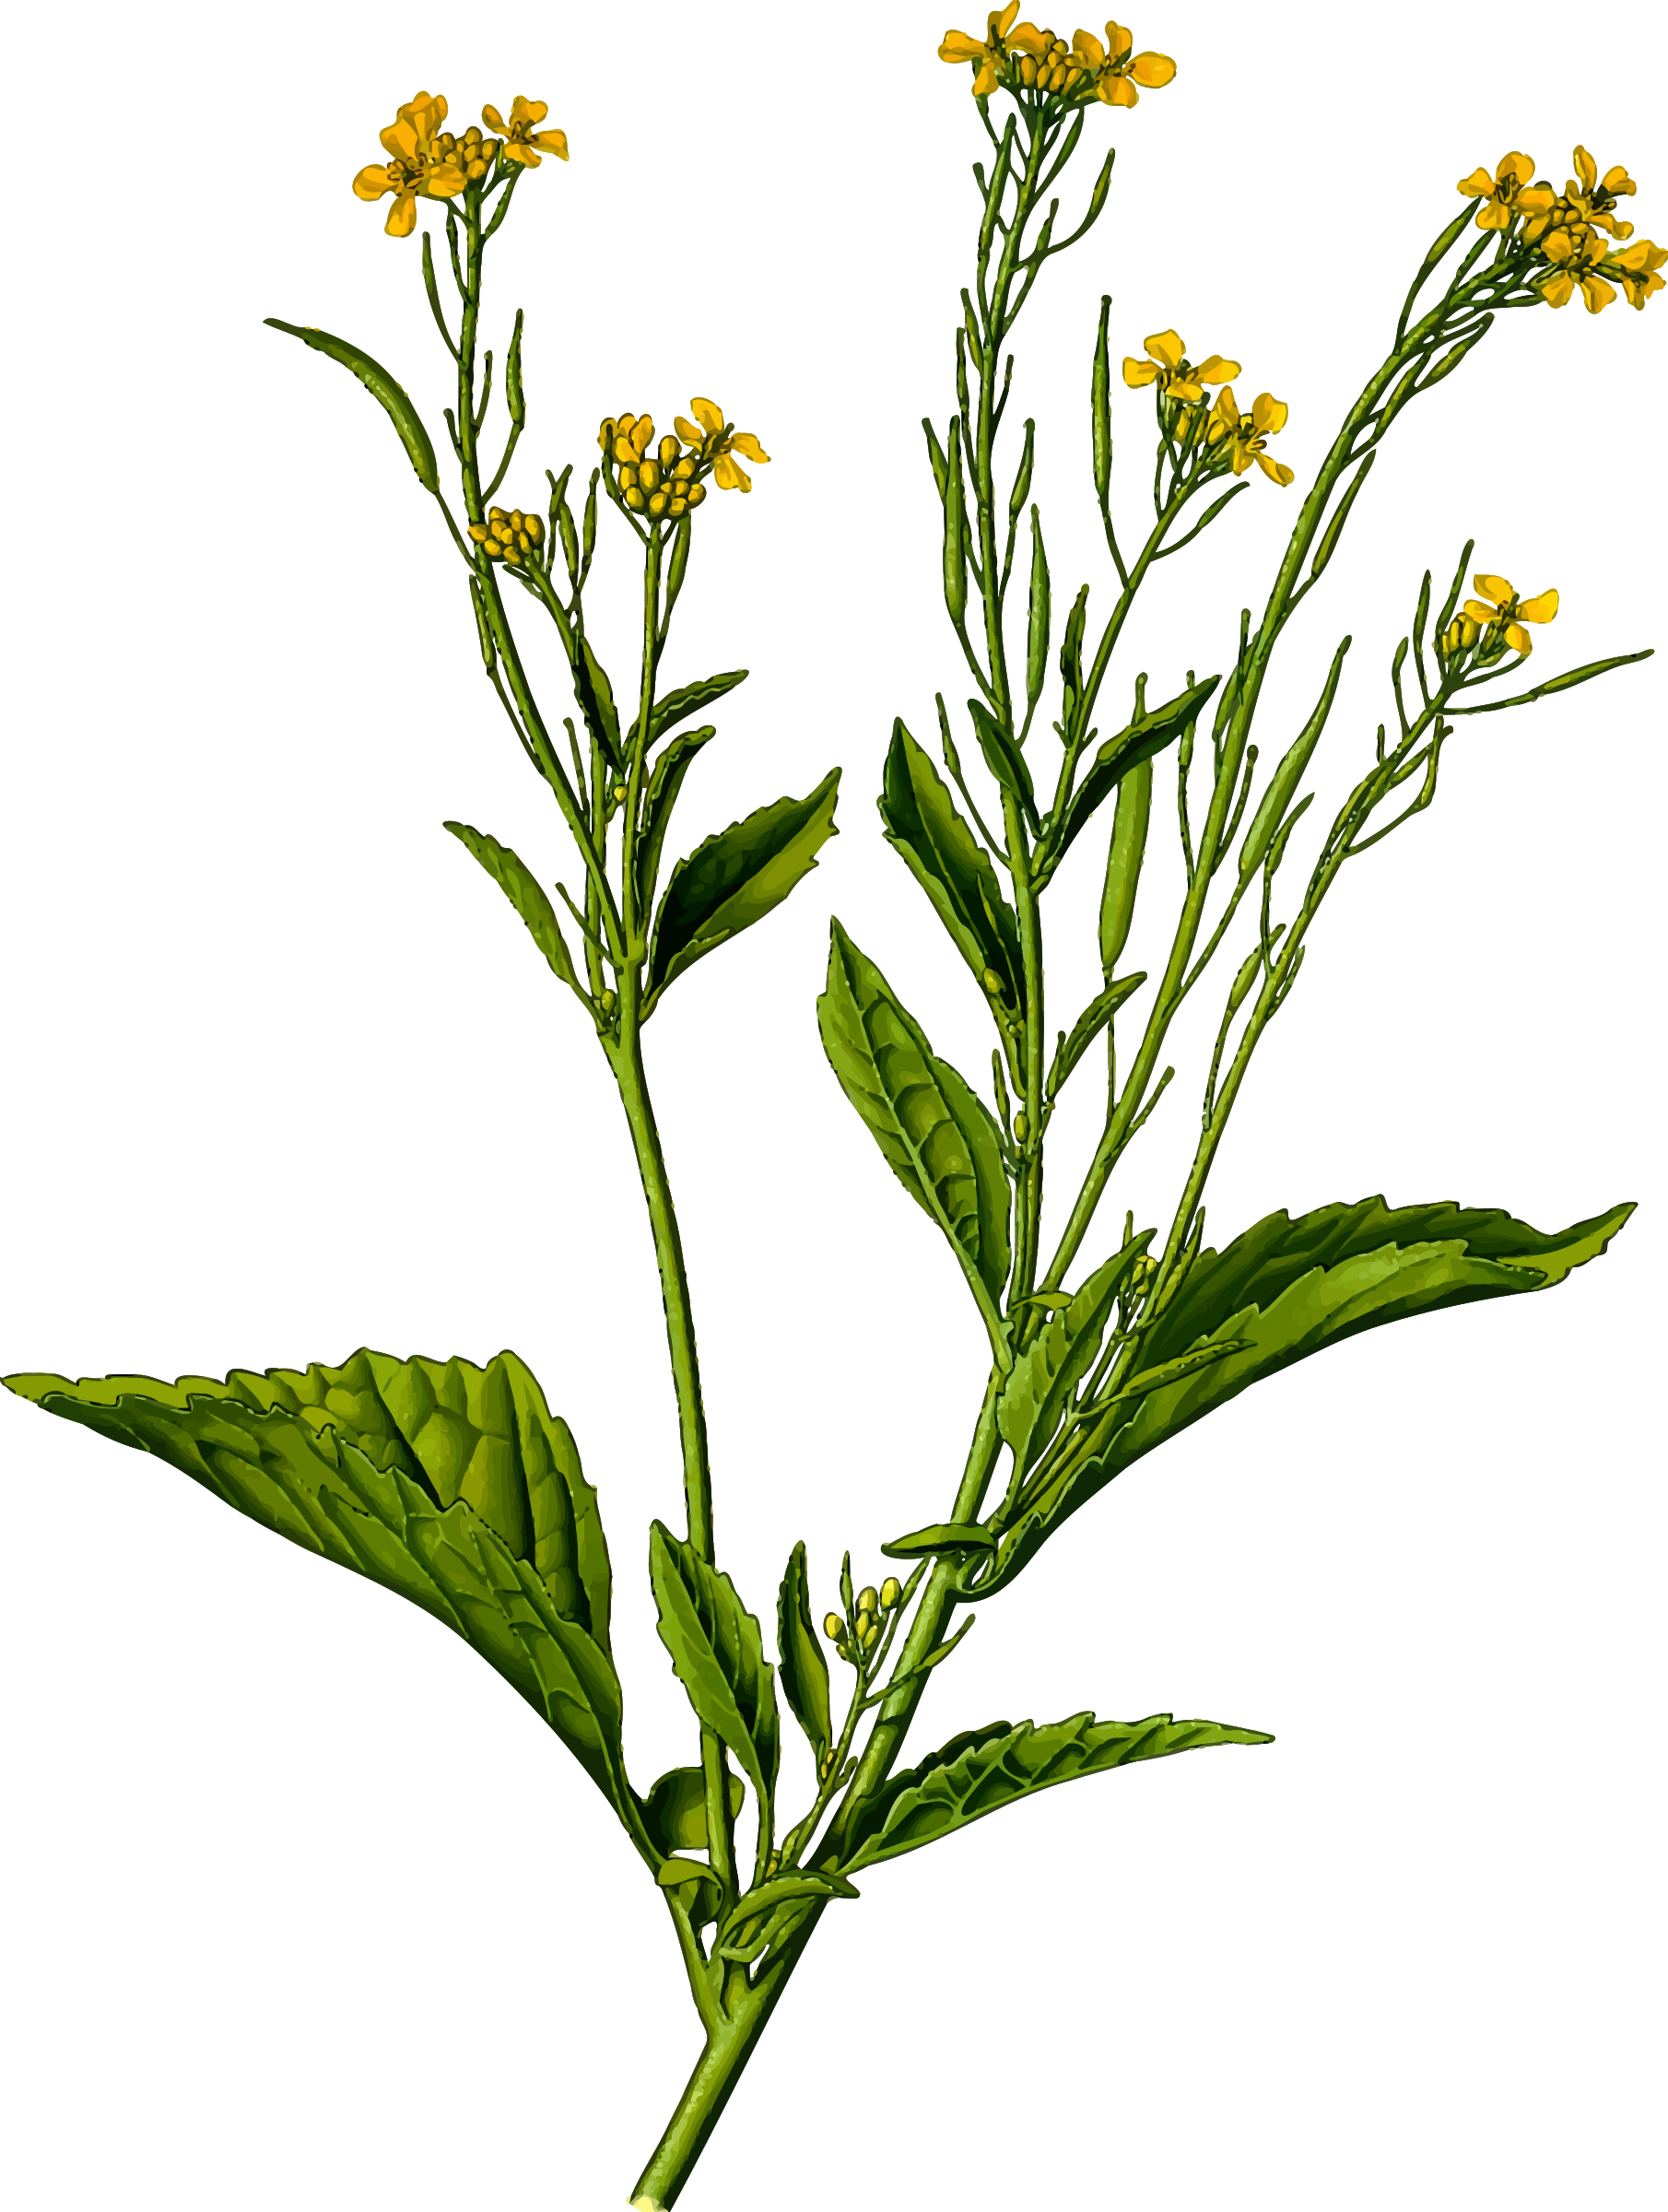 Goldenrod drawing flower. Clipart mustard greens detailed